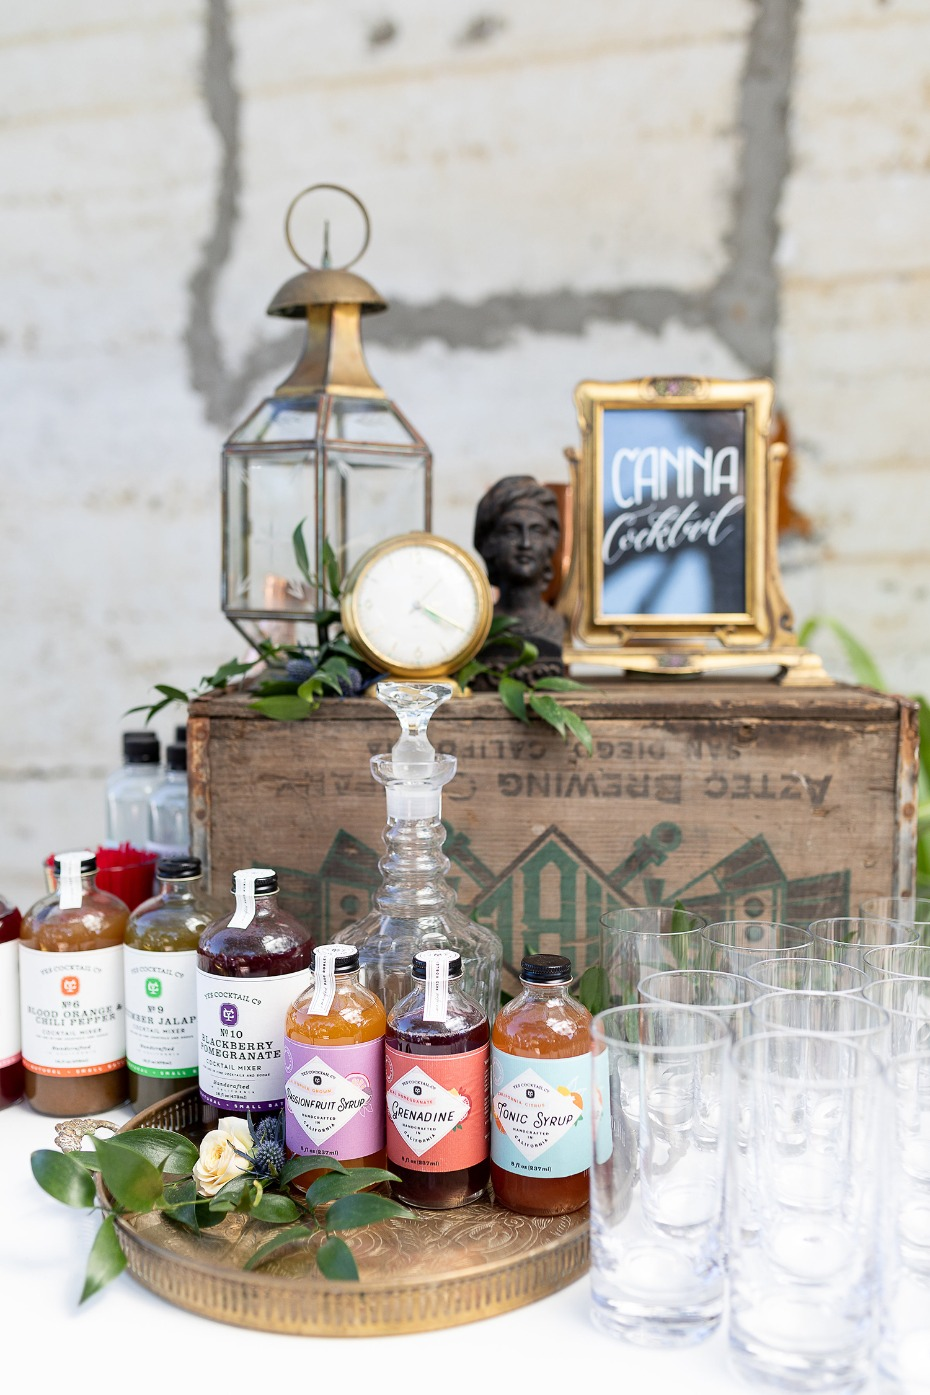 Canna cocktails for a cannabis infused wedding